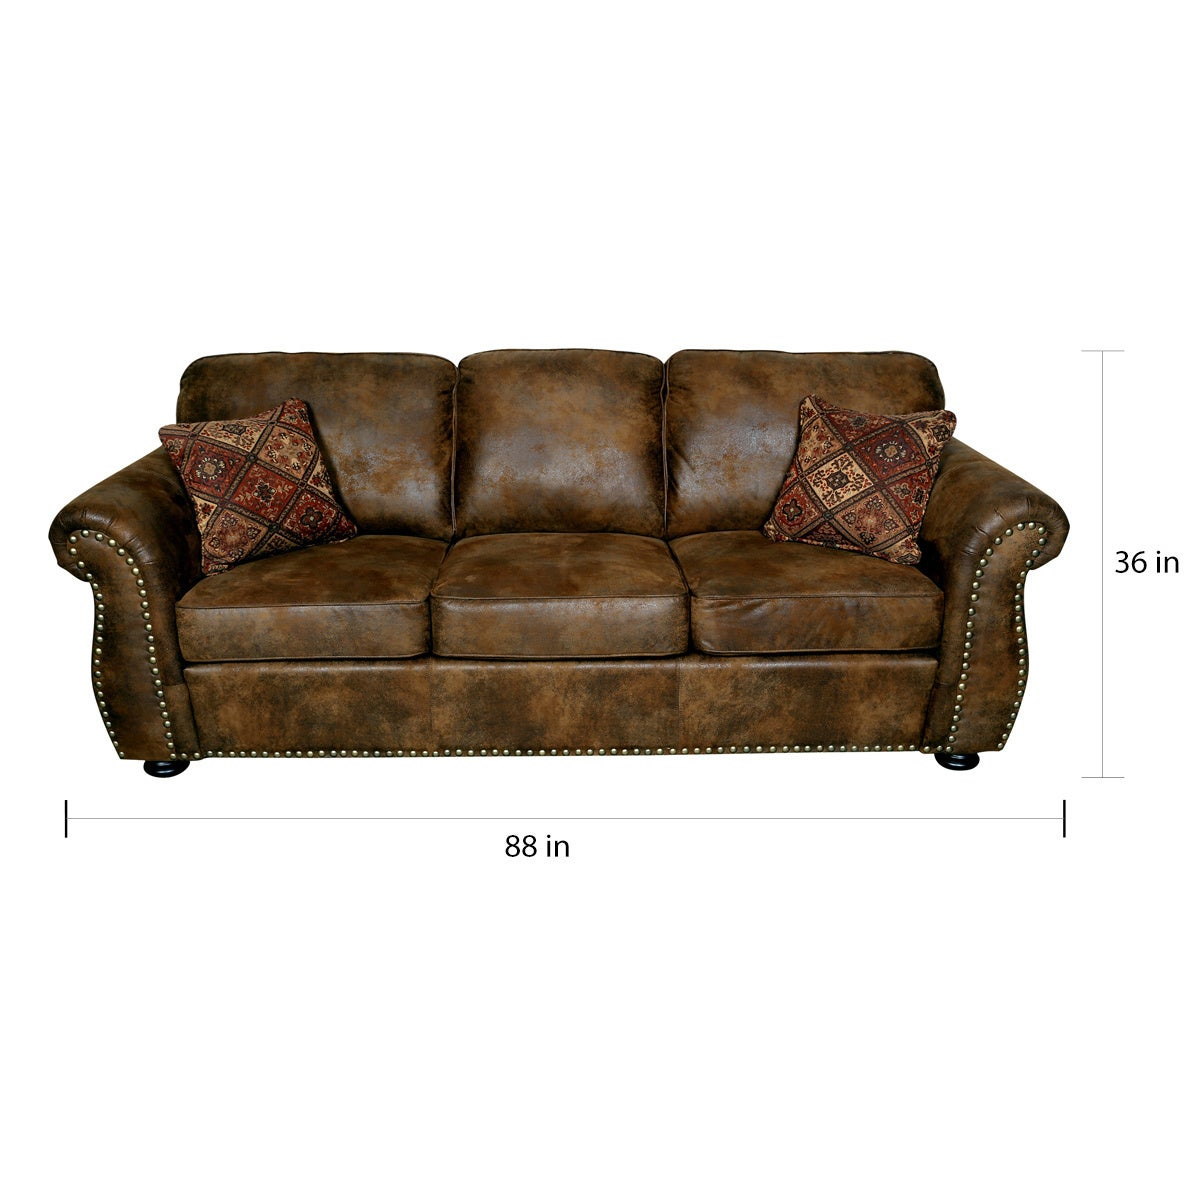 Porter Elk River Brown Microfiber Faux Suede Leather Sofa With 2 Woven Accent Pillows Free Shipping Today 18438308